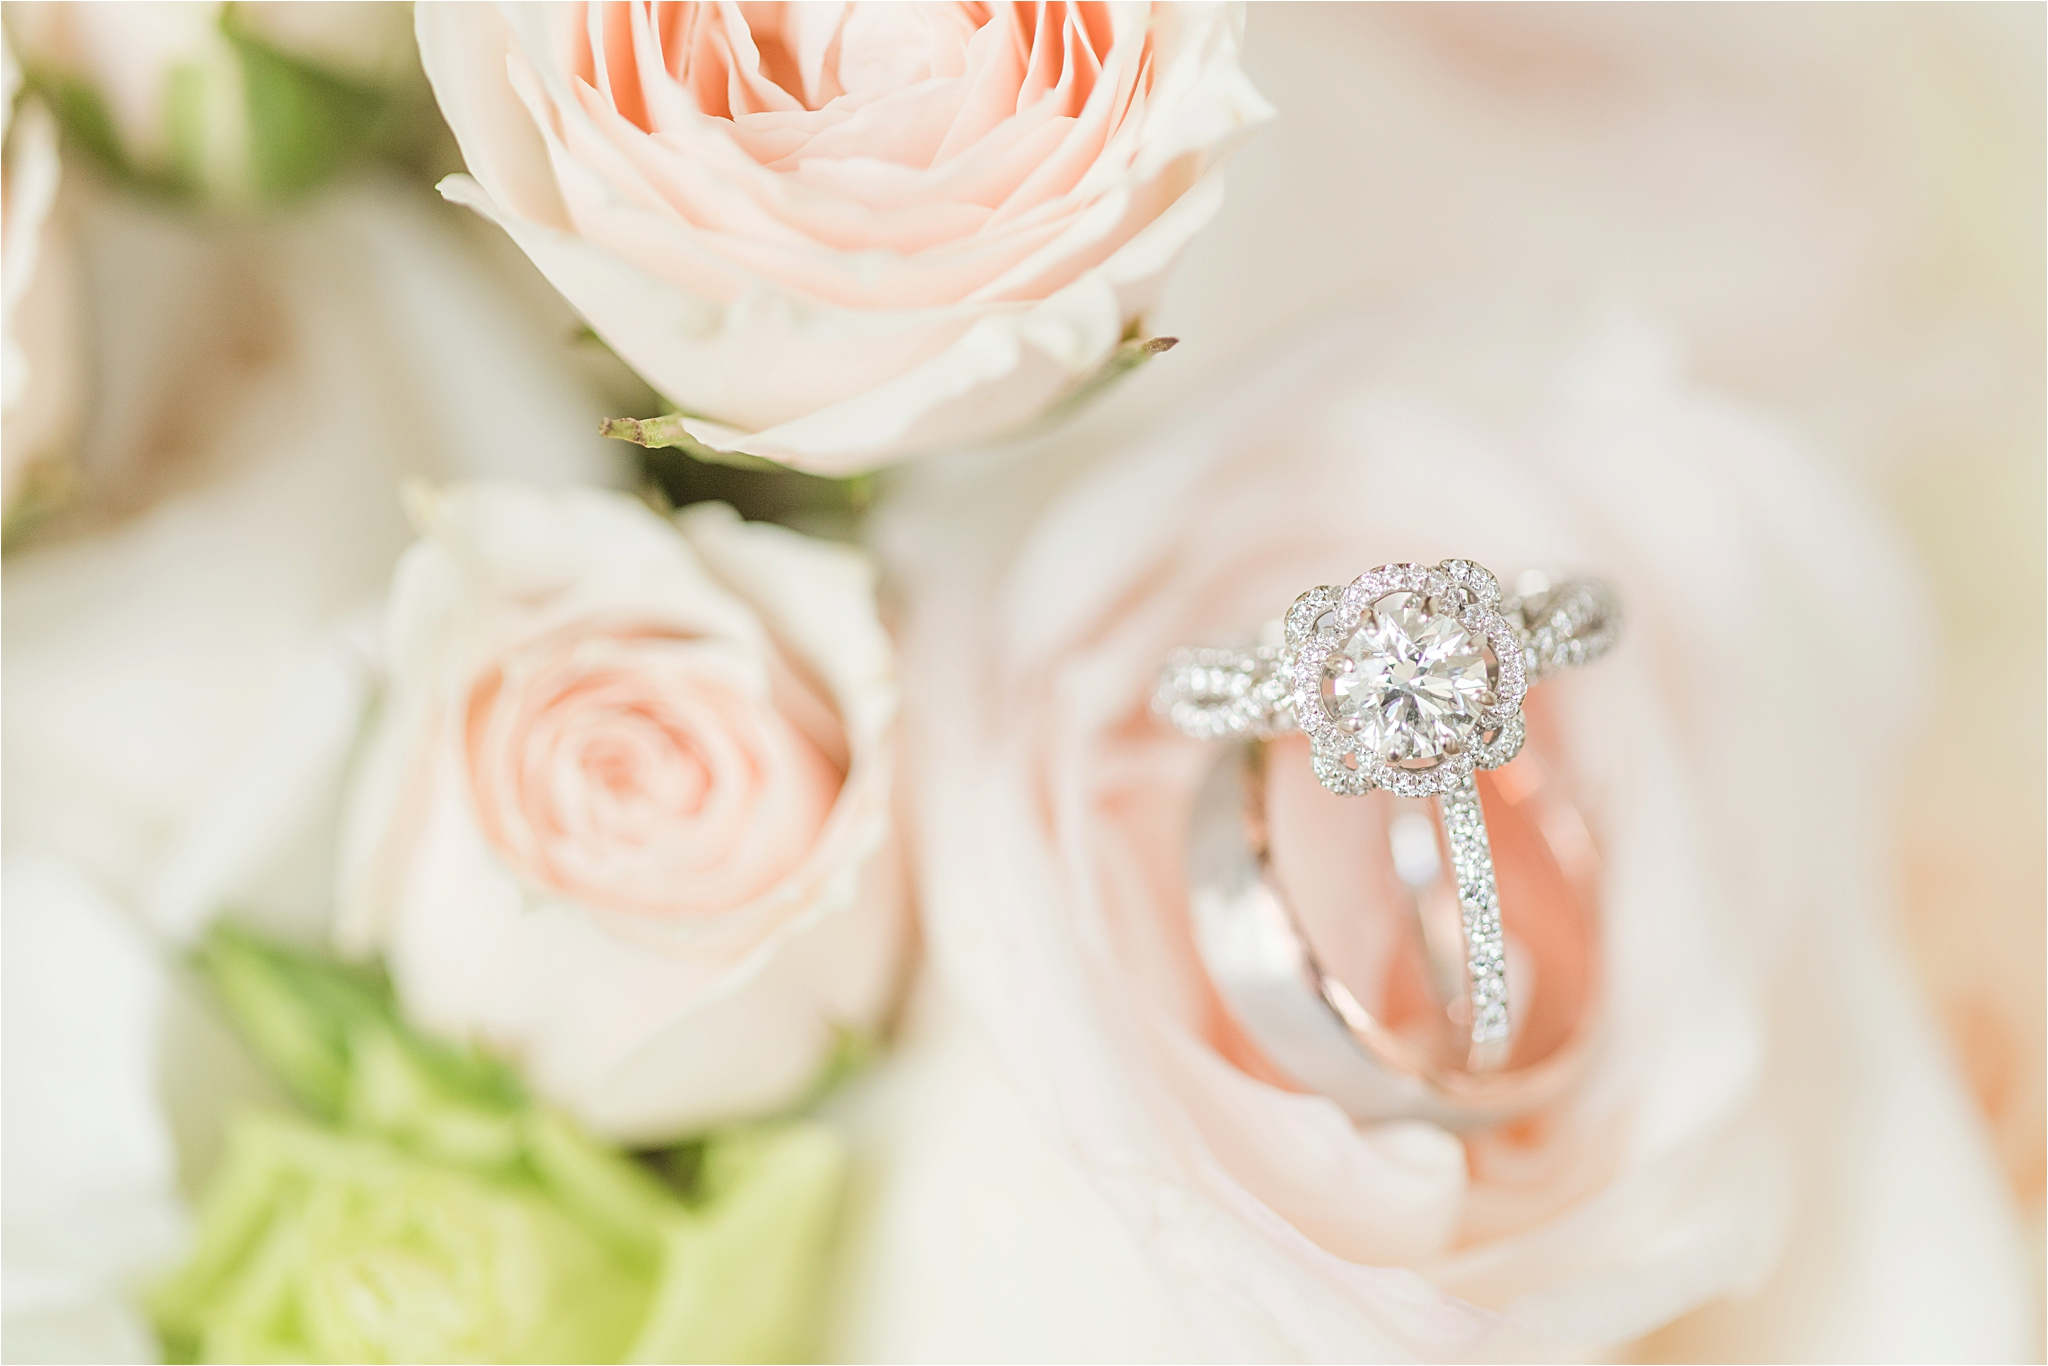 white-gold-engagement-ring-bouquet-twisted-band-round-diamond-cut-blossom